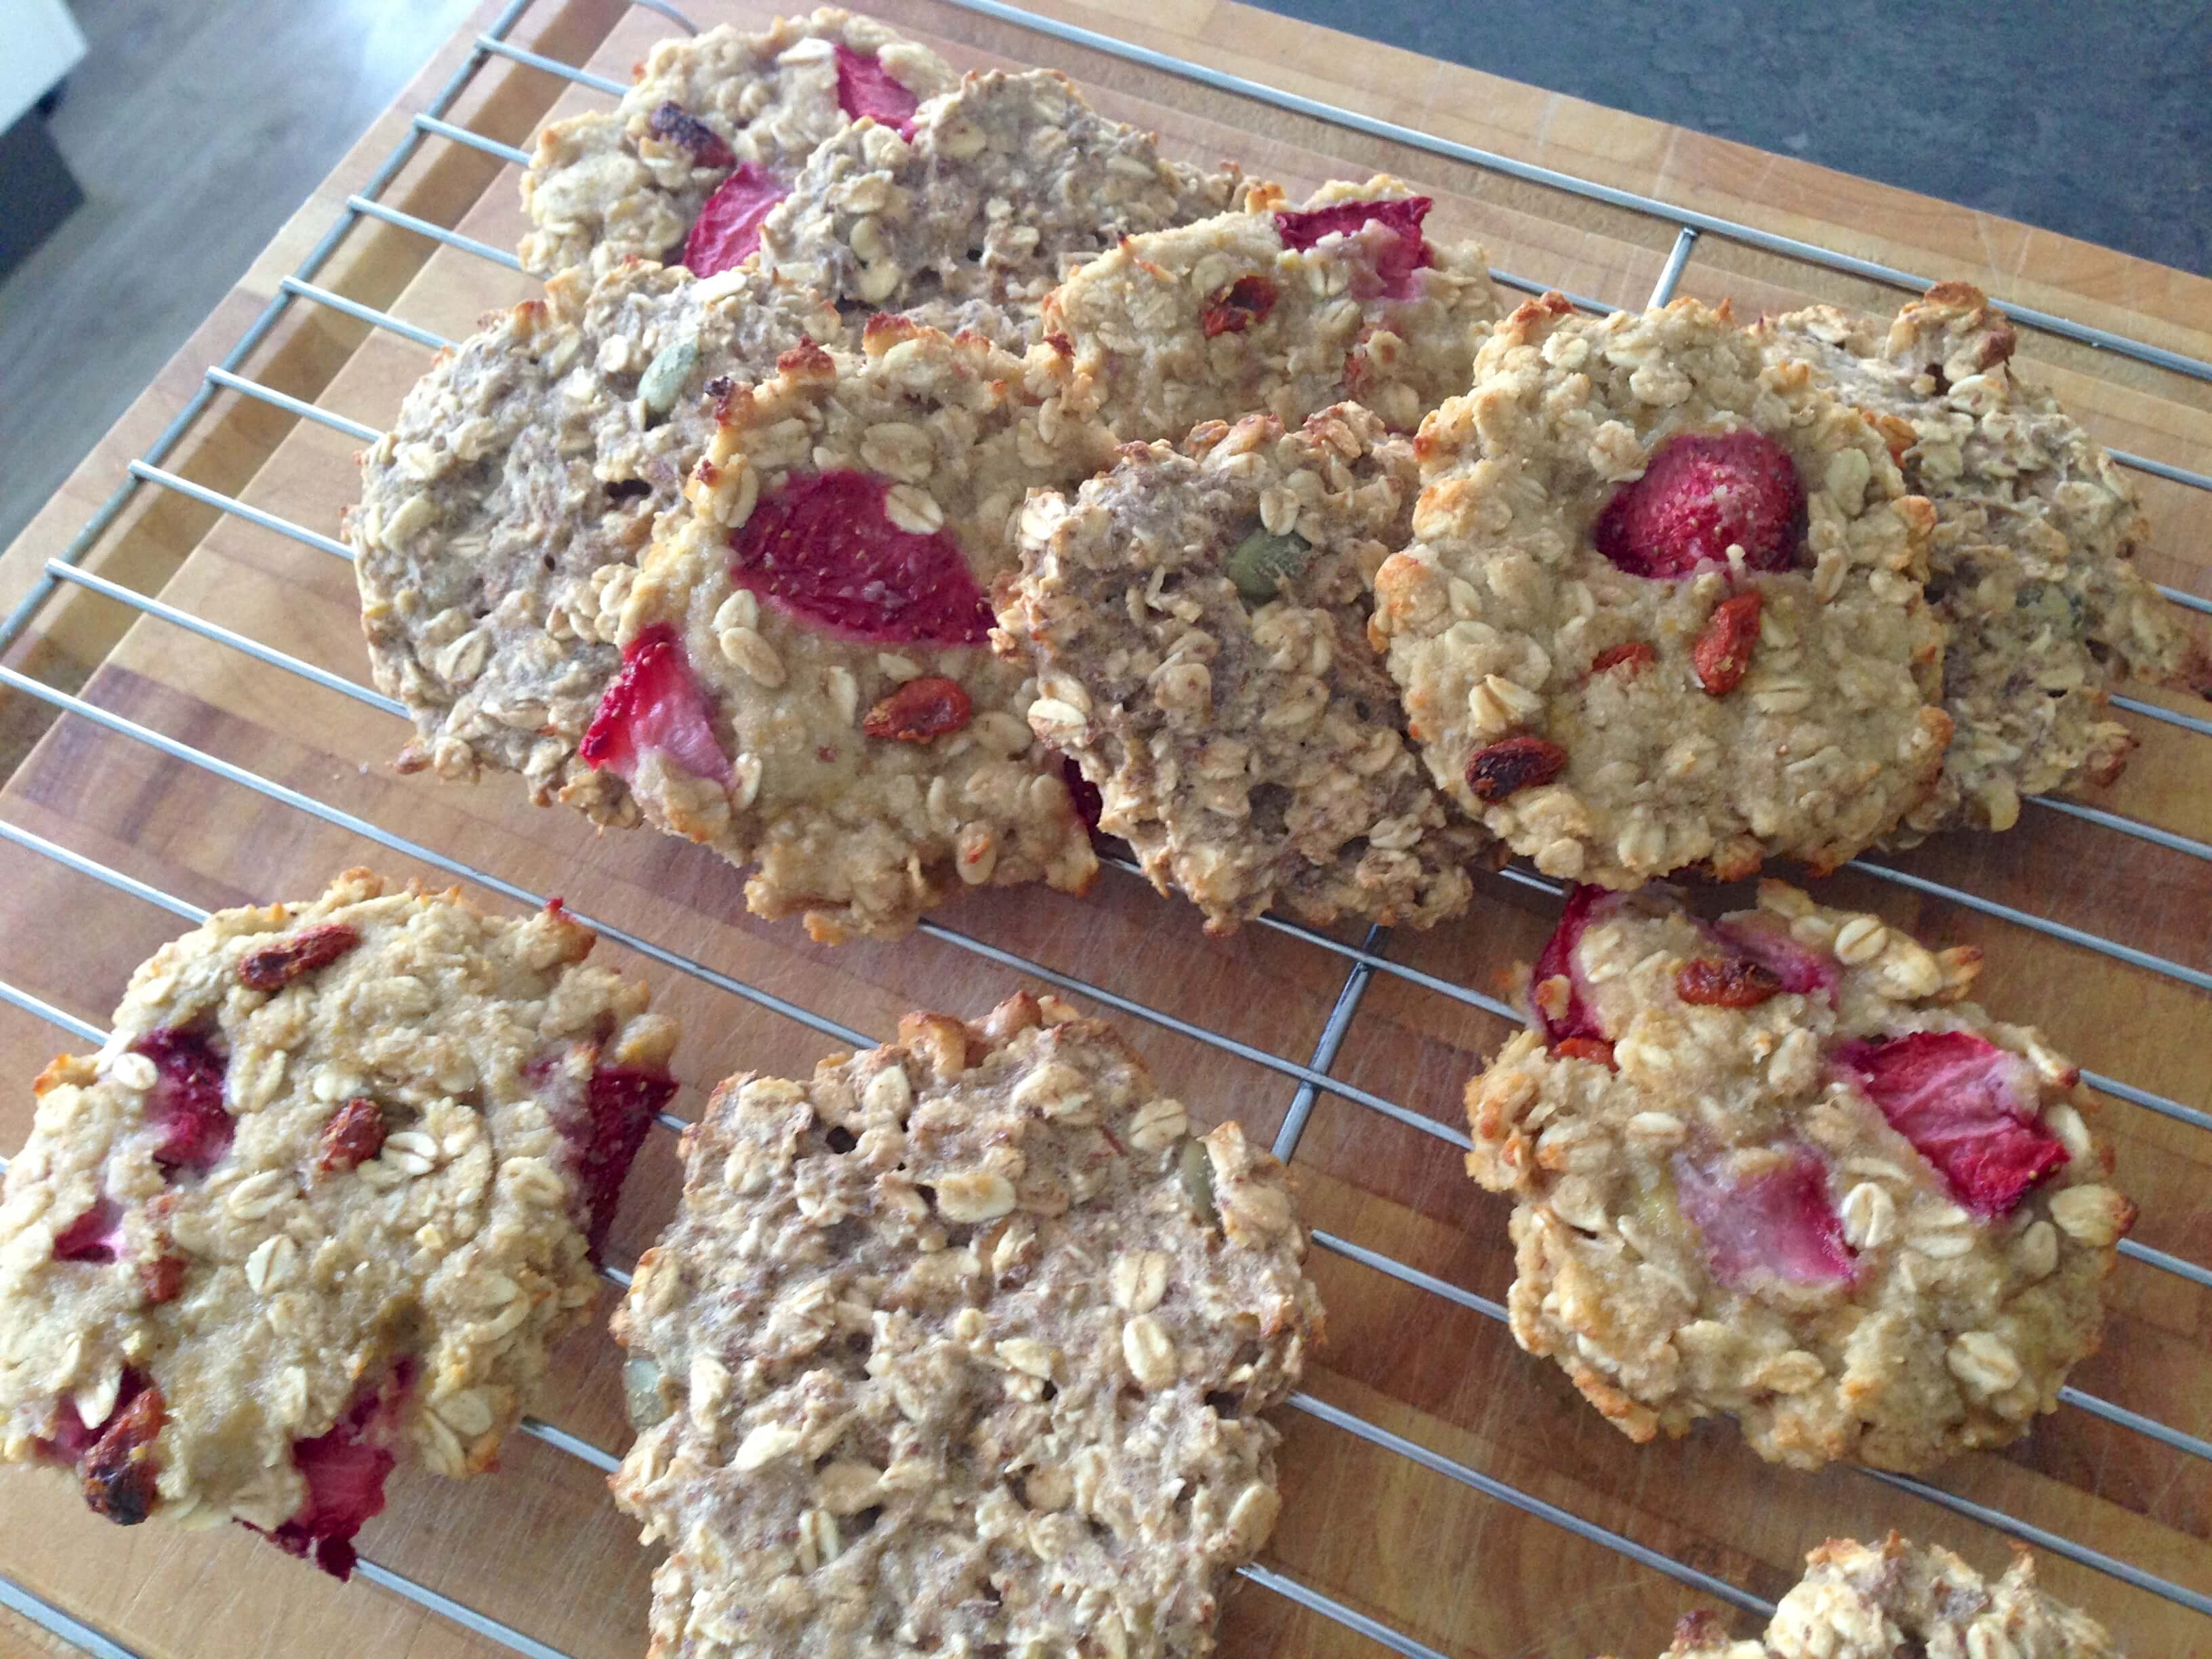 Oat cookies with strawberries and seeds on a cooling rack